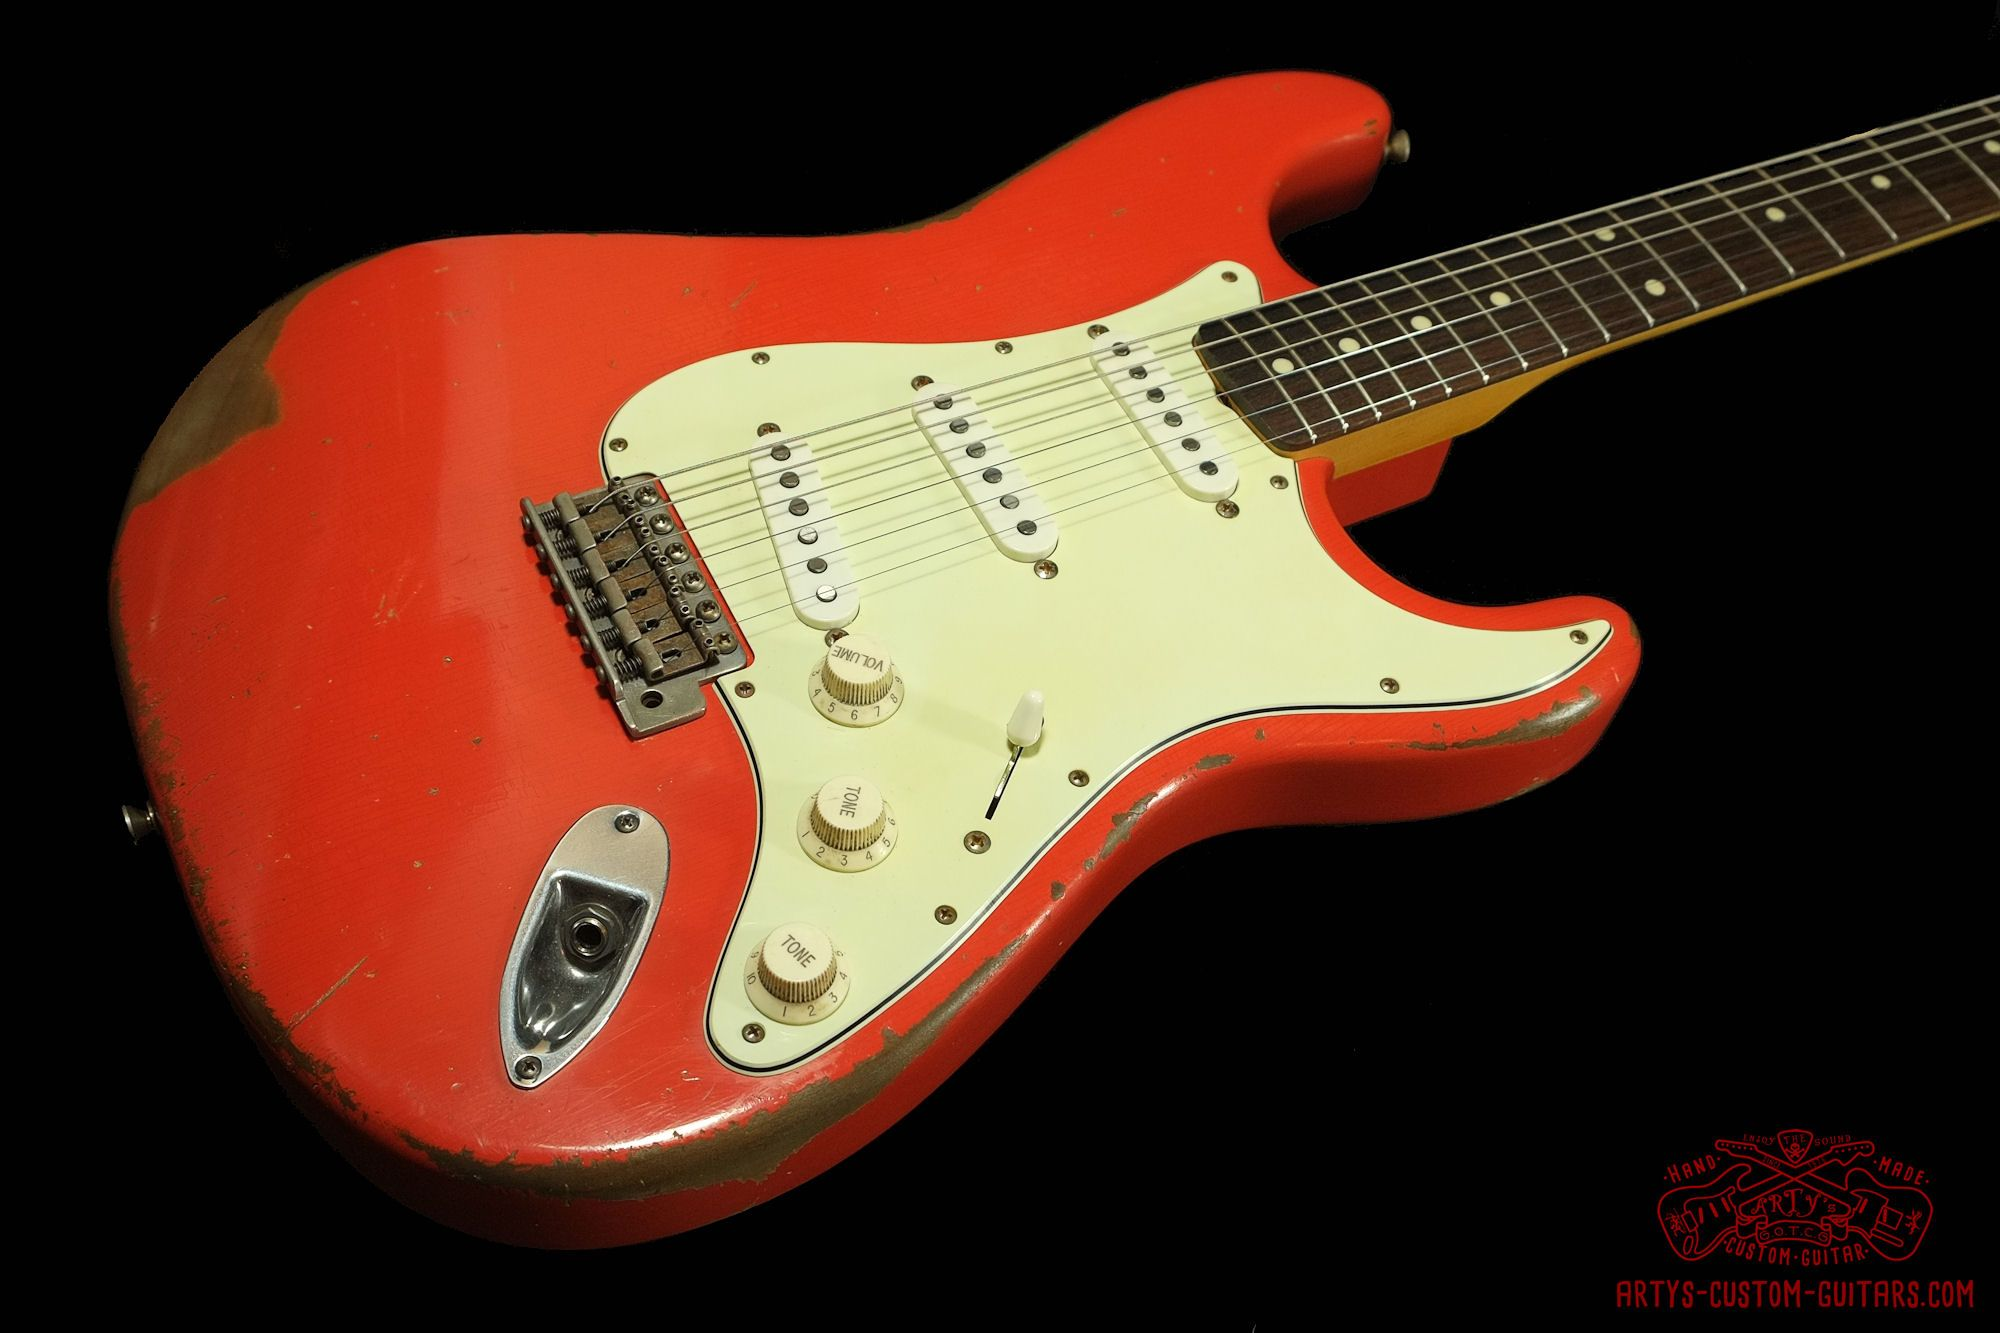 d3d569daa8fd Stratocaster 62 heavy relic Fiesta Red Body Artys Custom Guitars Shop Strat  Relicing Swamp Ash swampash Alder Nitro NC Finish aged Roadworn Arty s